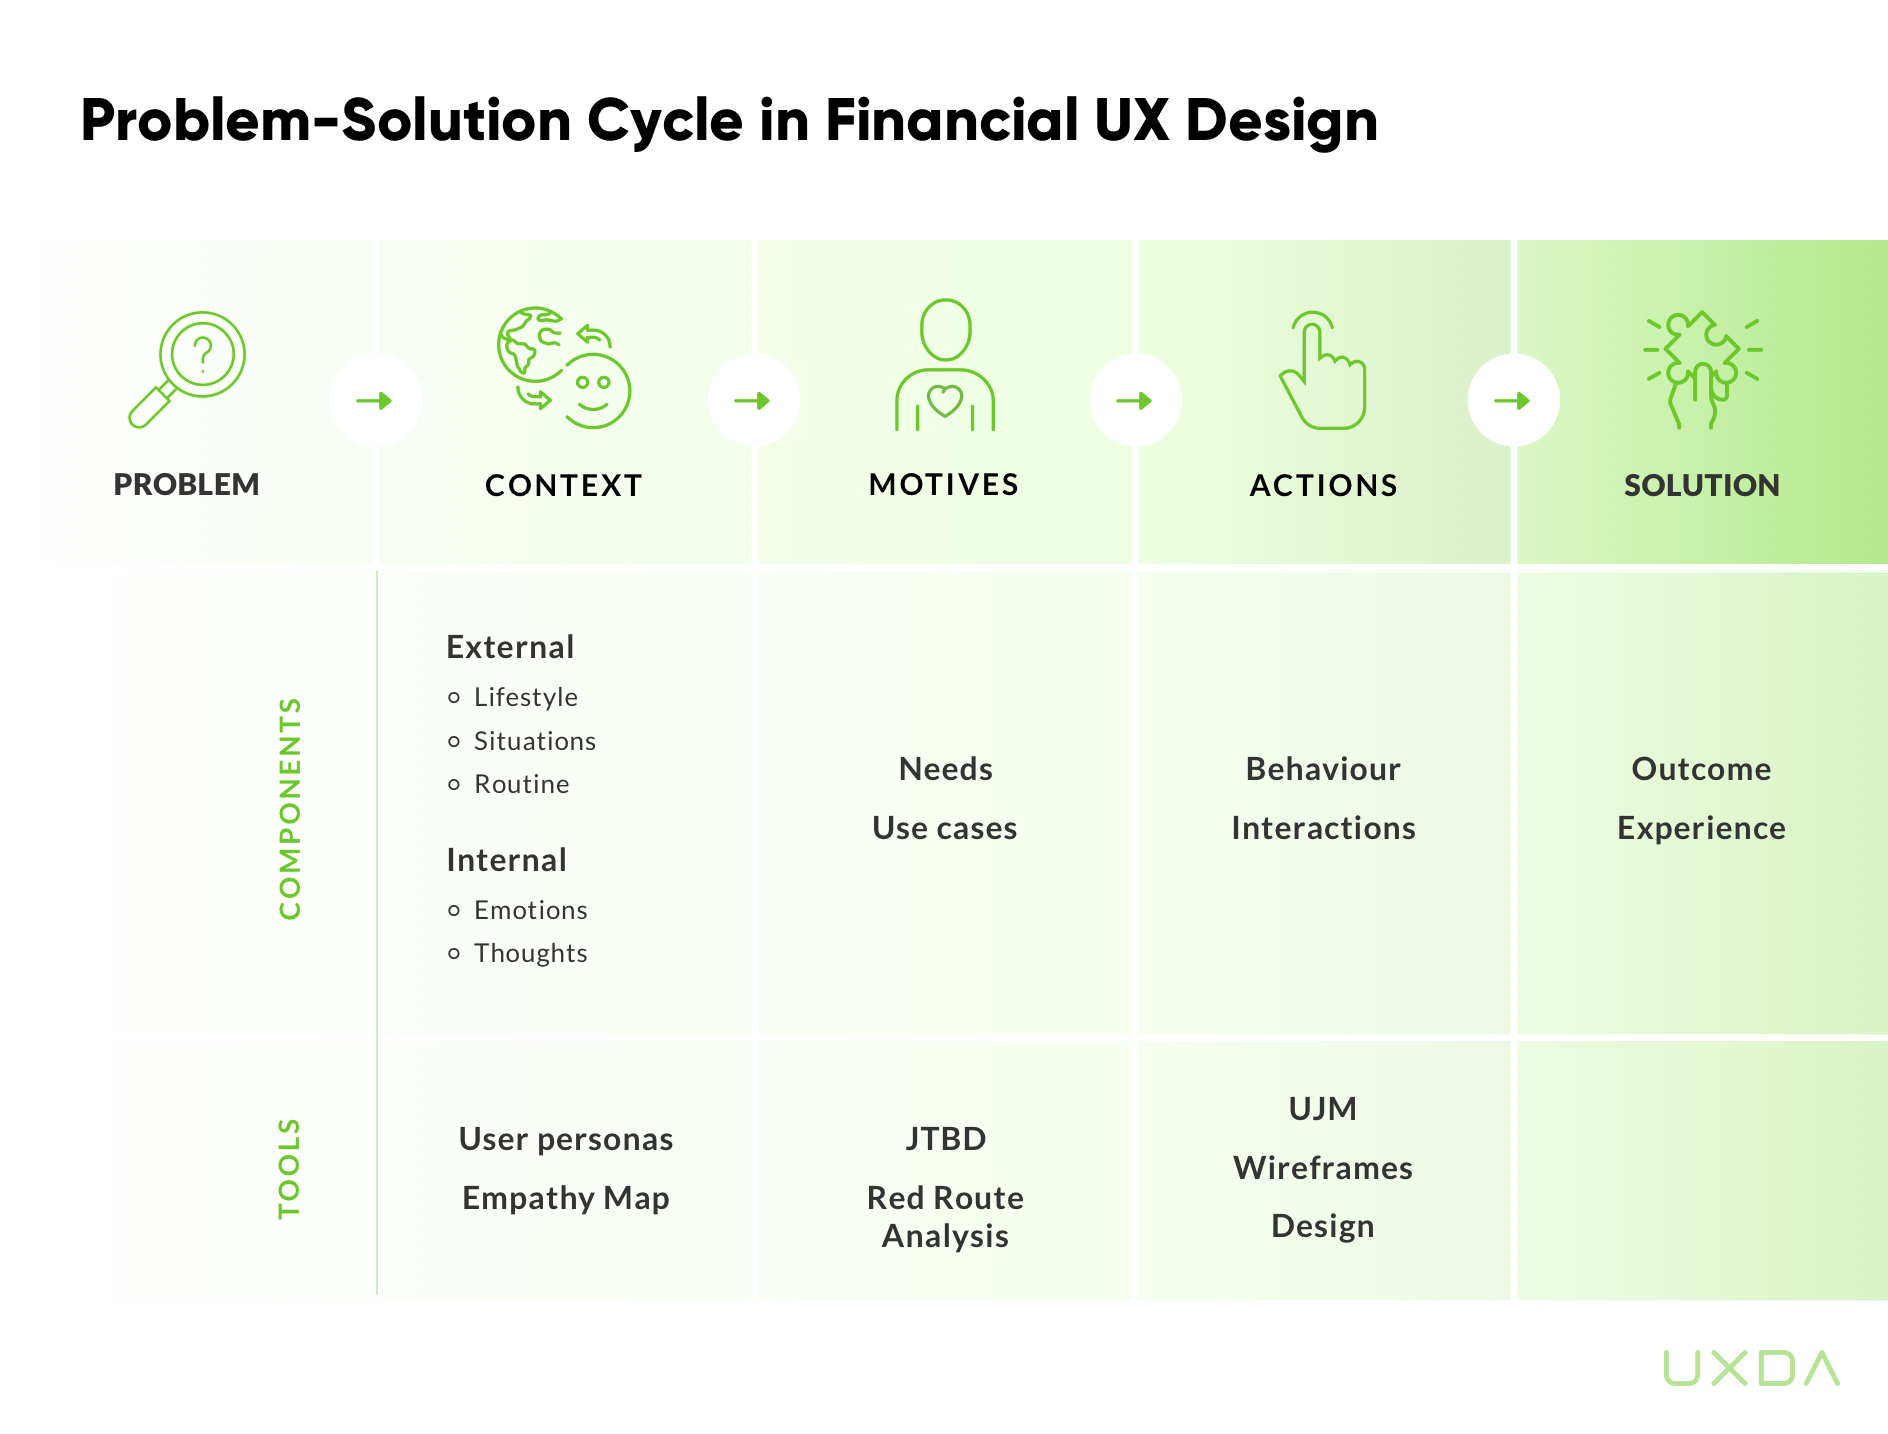 digital-financial-services-ux-problem-solution-cycle-2.jpg